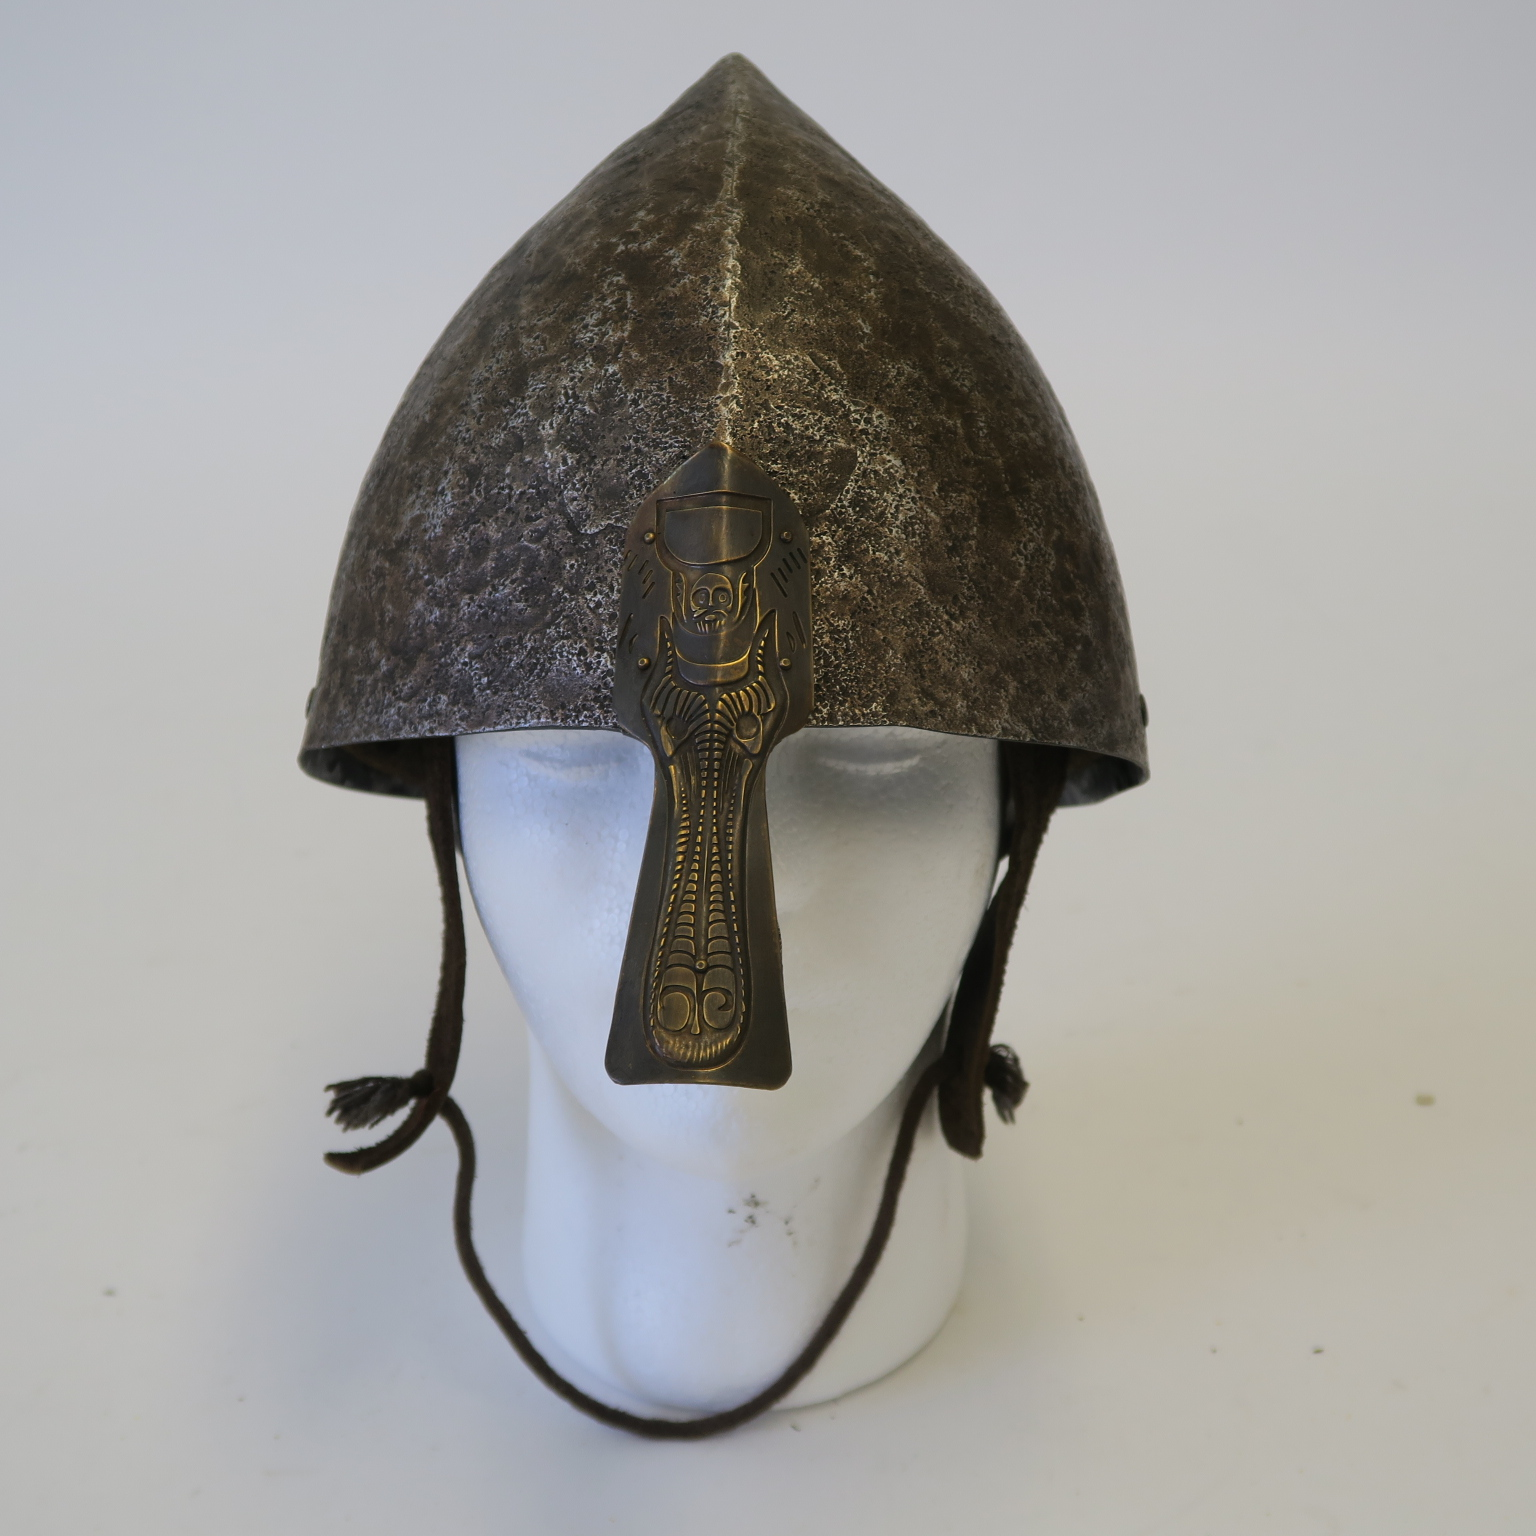 Lot 40 - Viking style movie prop metal helmet with leather chin strap,